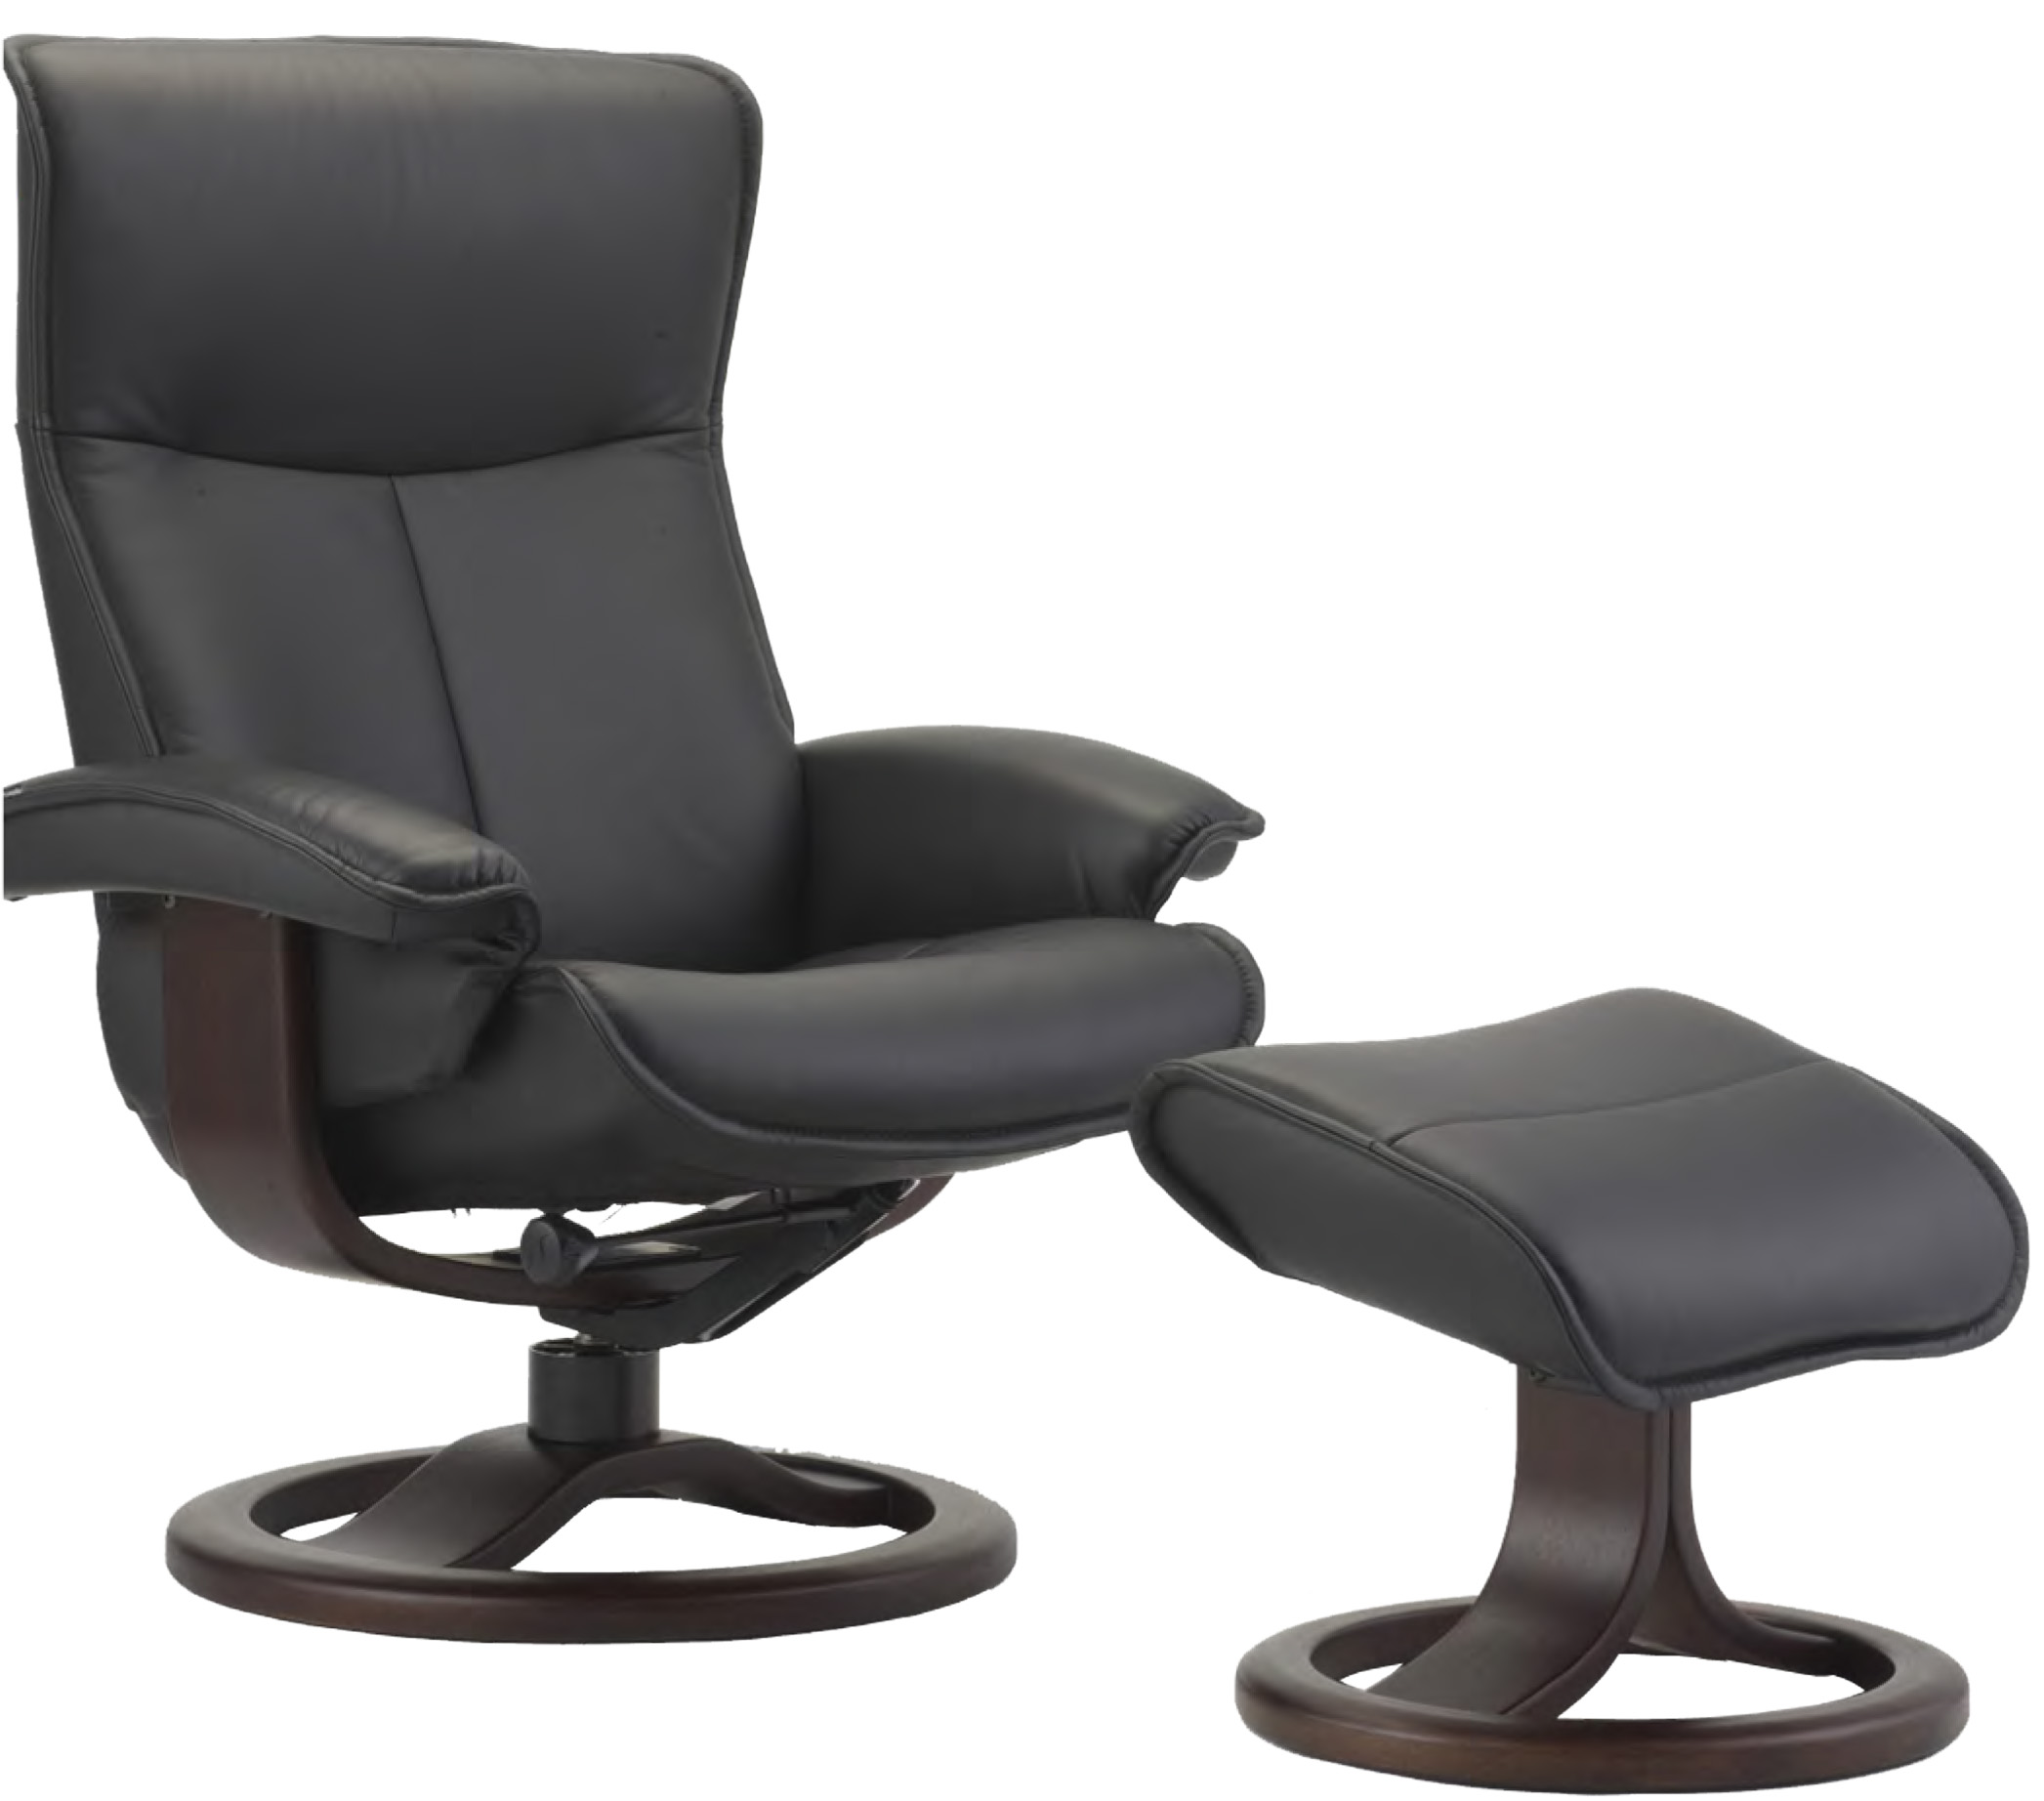 Fjords Senator Ergonomic Leather Recliner Chair Ottoman – Reclining Chairs with Ottomans